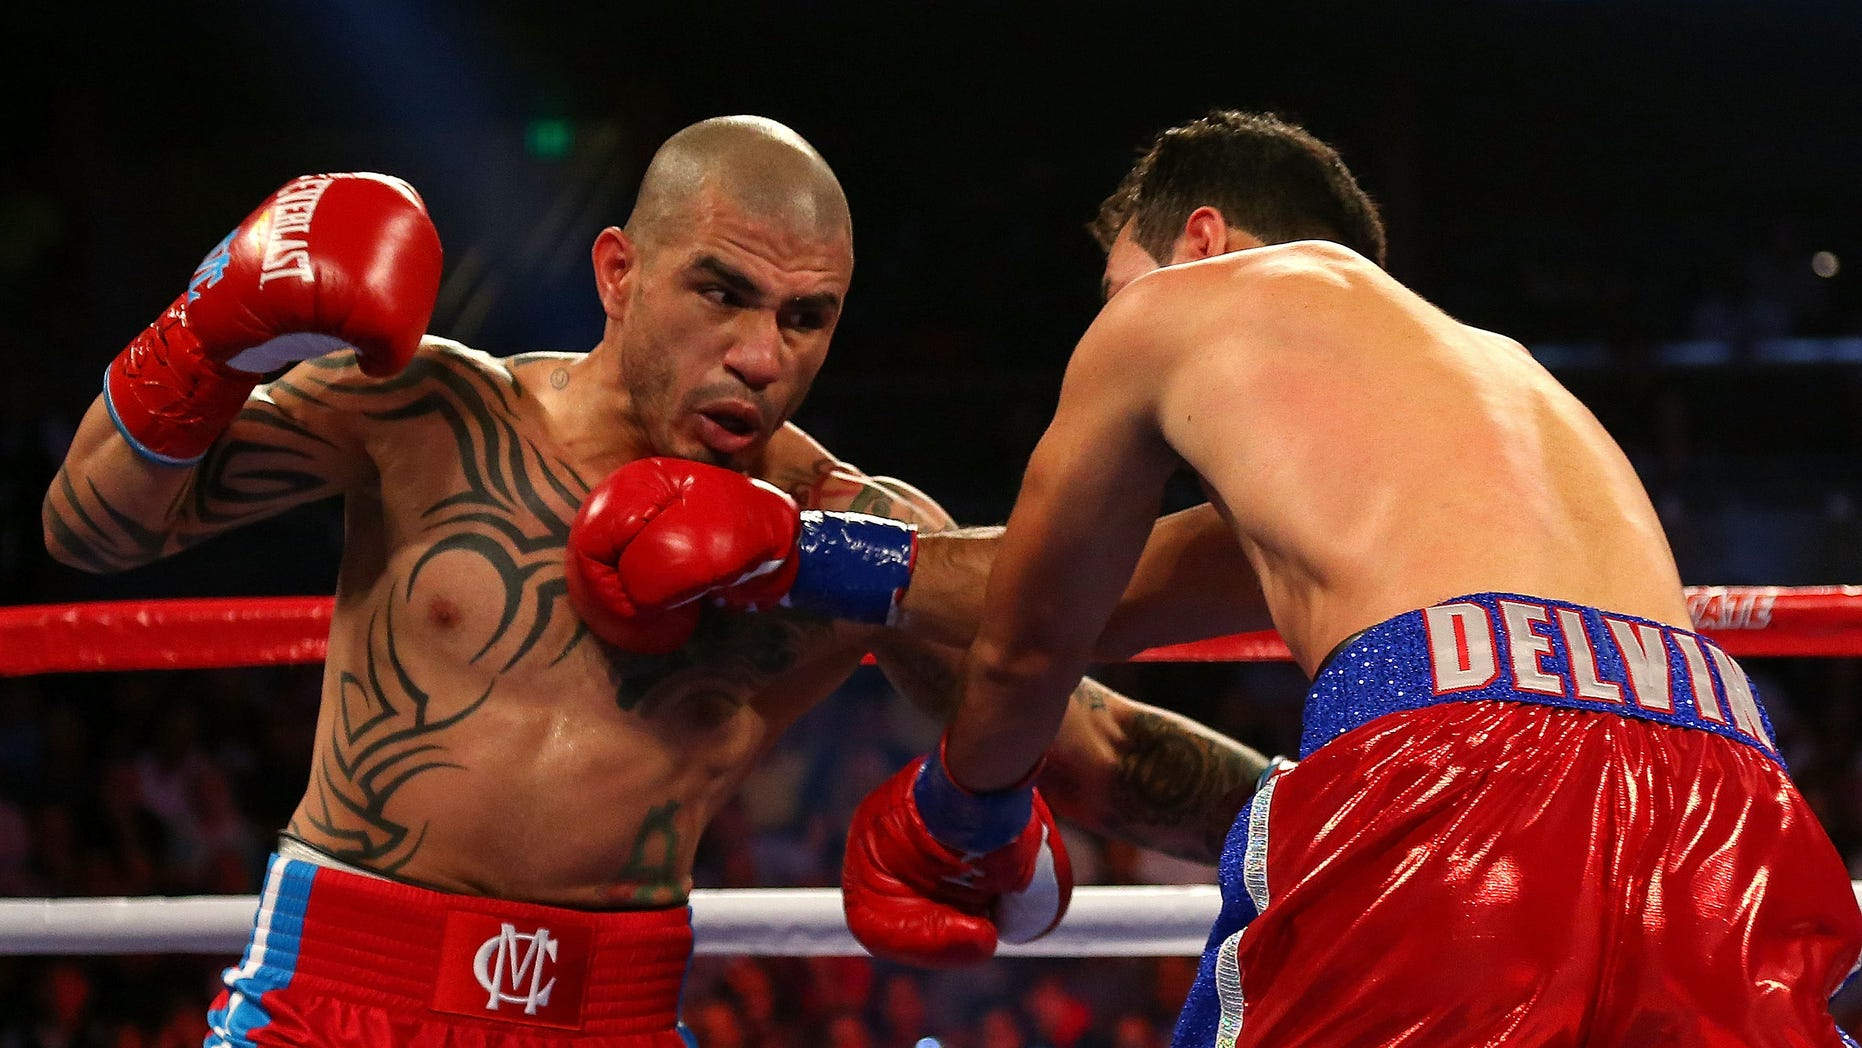 ORLANDO, FL - OCTOBER 05:  Miguel Cotto throws a punch against Delvin Rodriguez during a Super Welterweight bout at Amway Center on October 5, 2013 in Orlando, Florida.  (Photo by Mike Ehrmann/Getty Images)